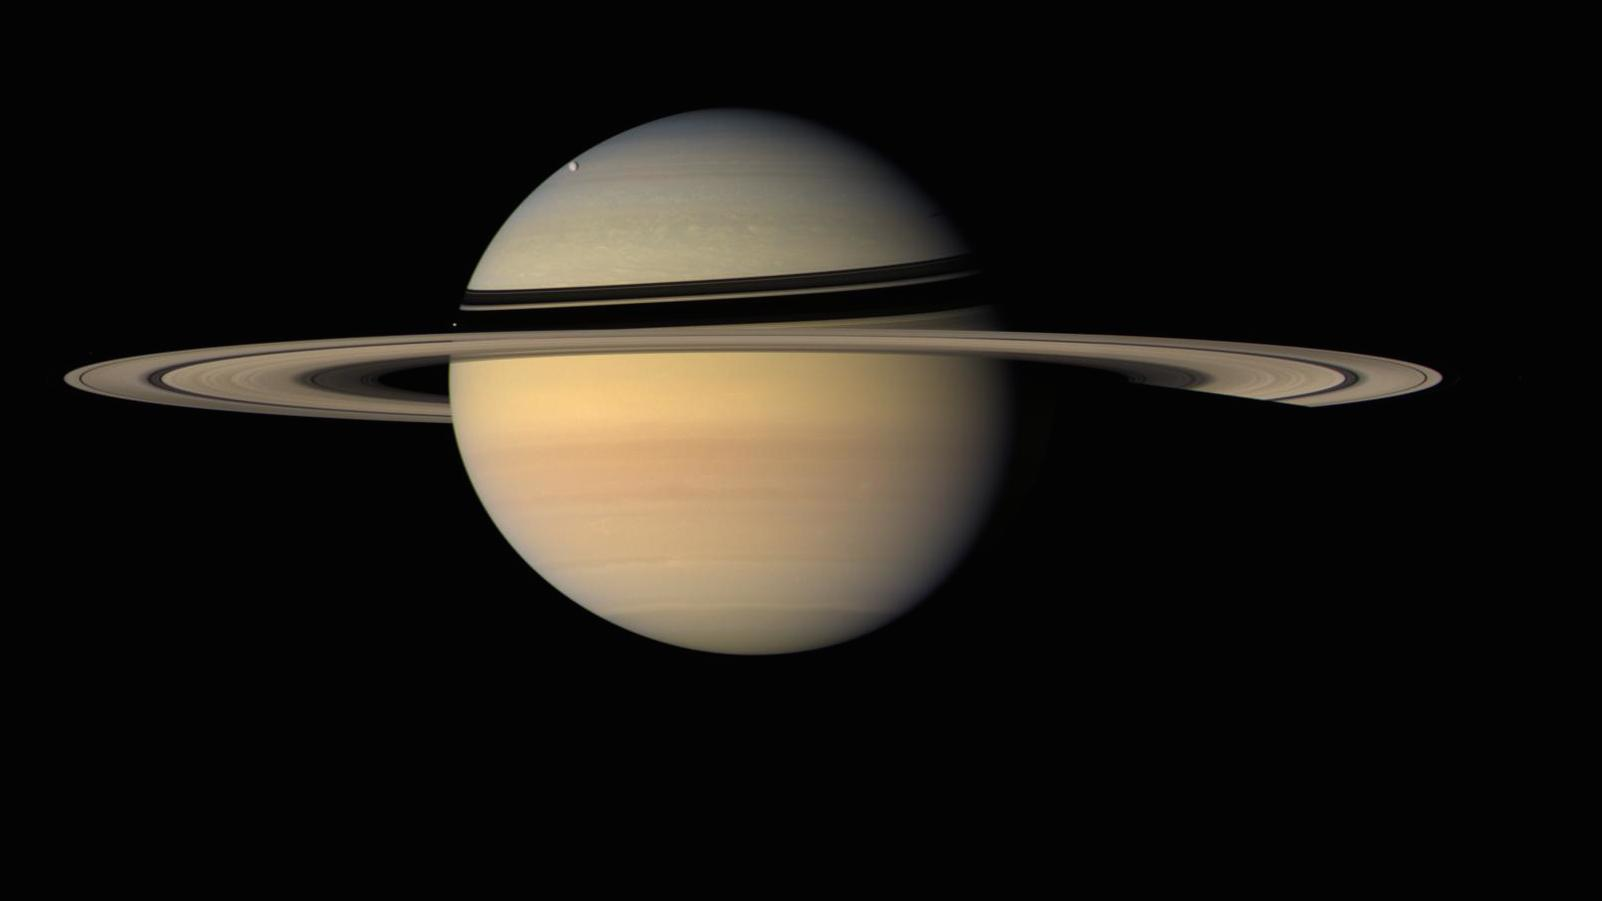 Wind-powered spacecraft for exploring Saturn, among other things.